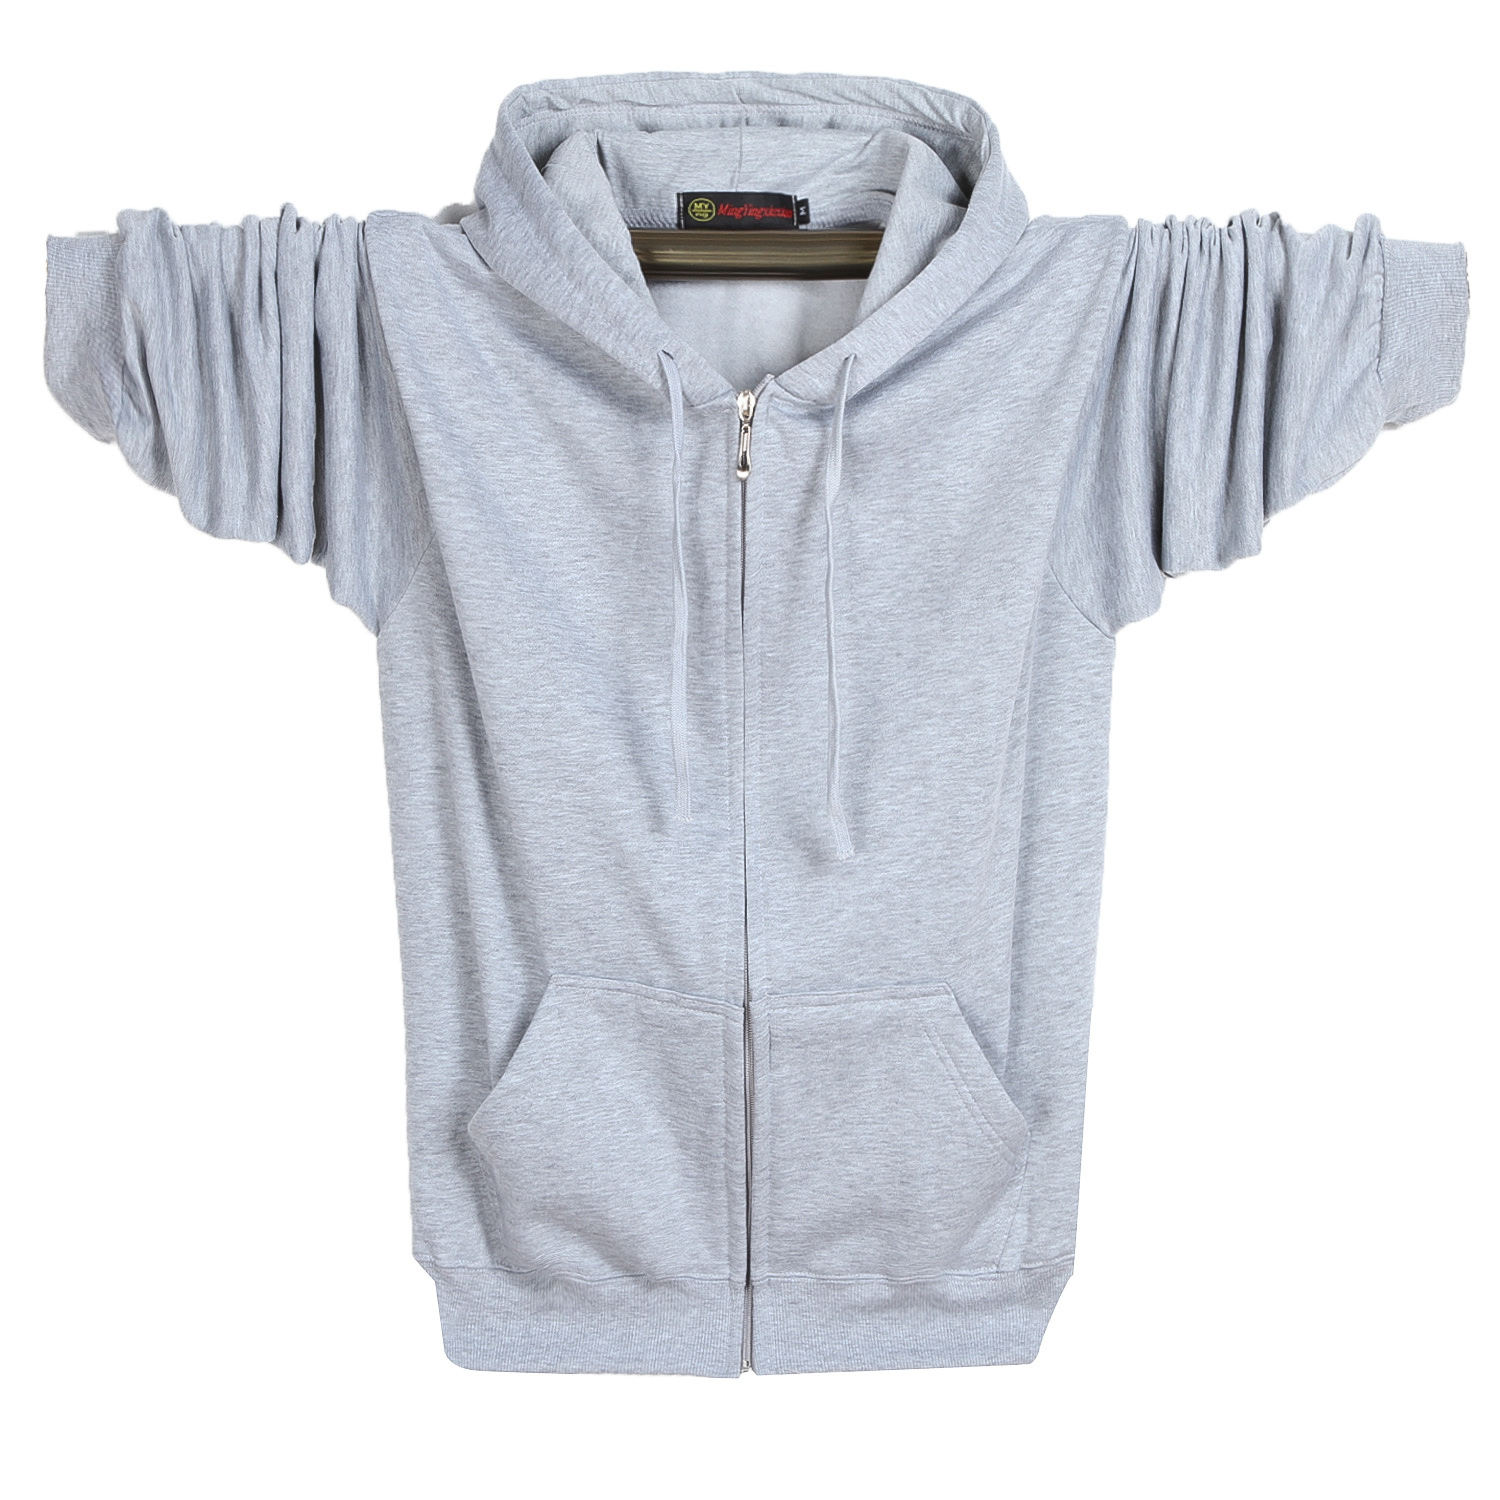 Mens fat plus plus size zipper Hoodie fat brother Plush fat man hooded sweater cardigan chubby brother sportswear